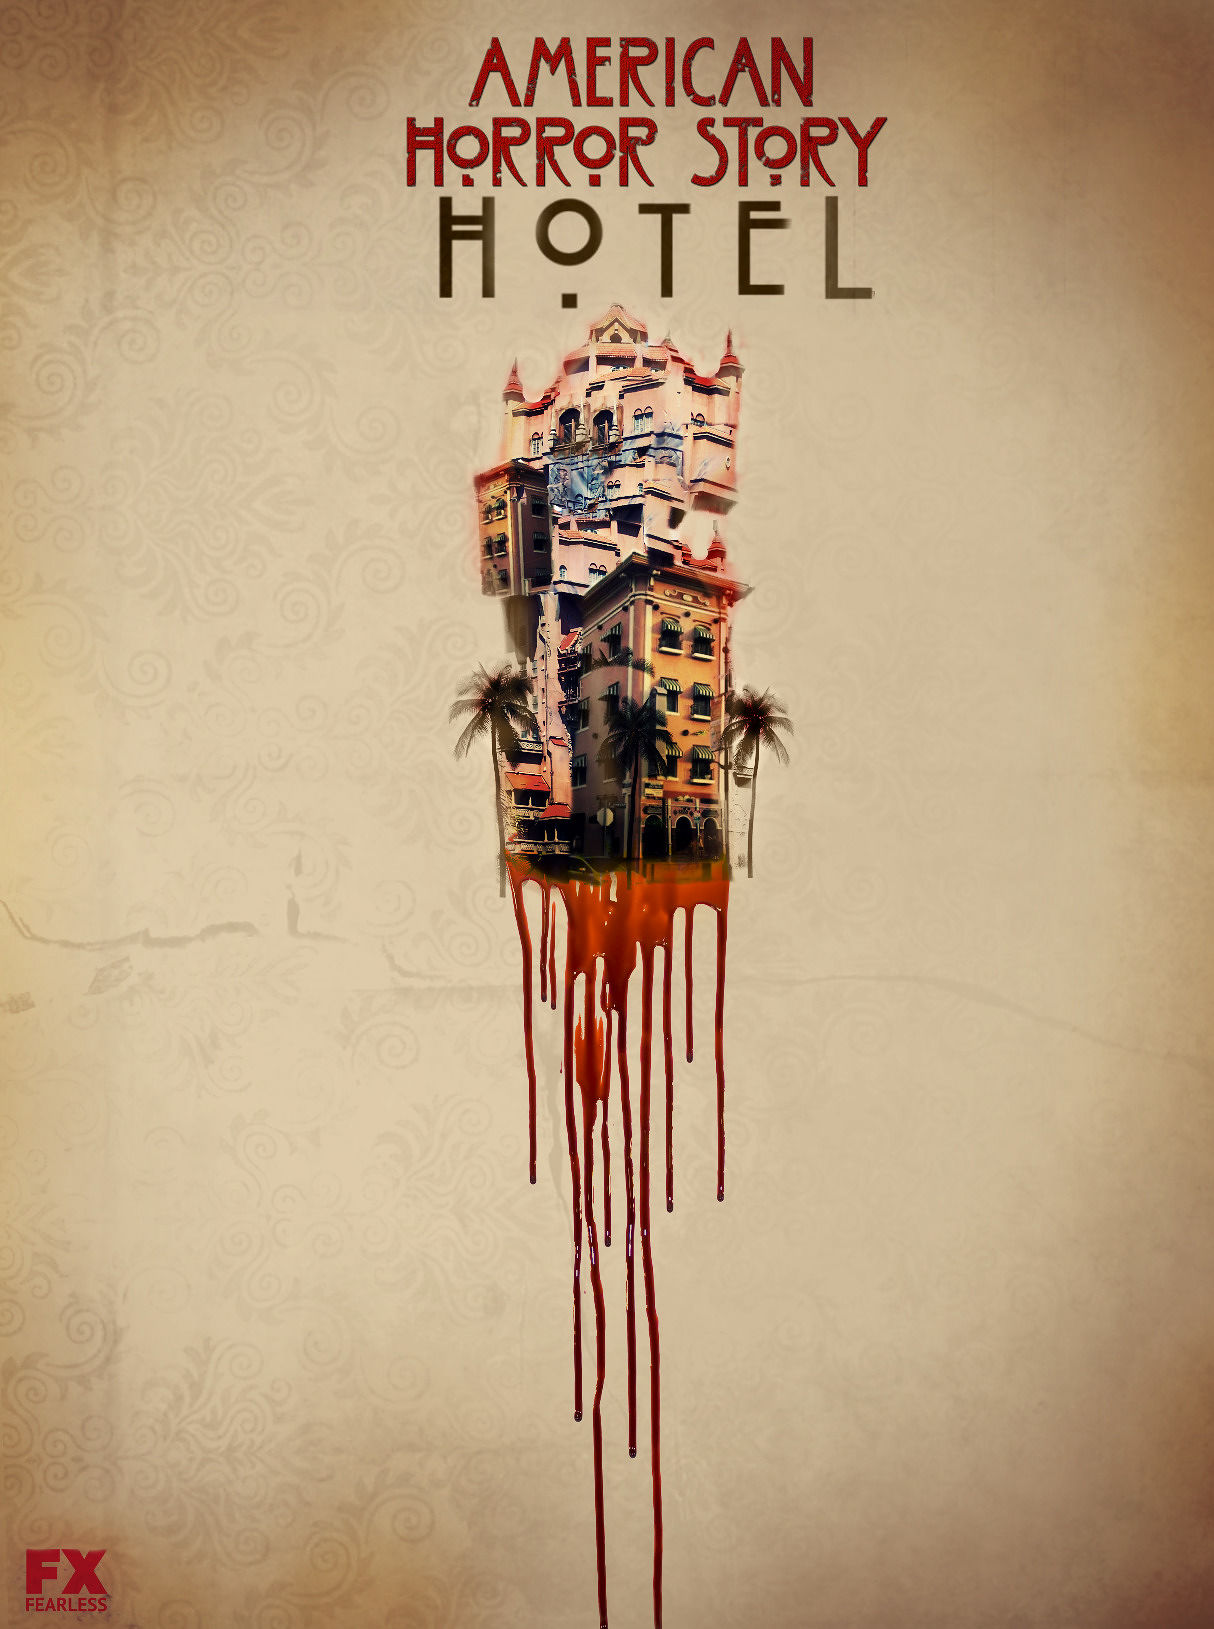 these-amazing-american-horror-story-hotel-fan-made-posters-will-drive-you-insane-559968